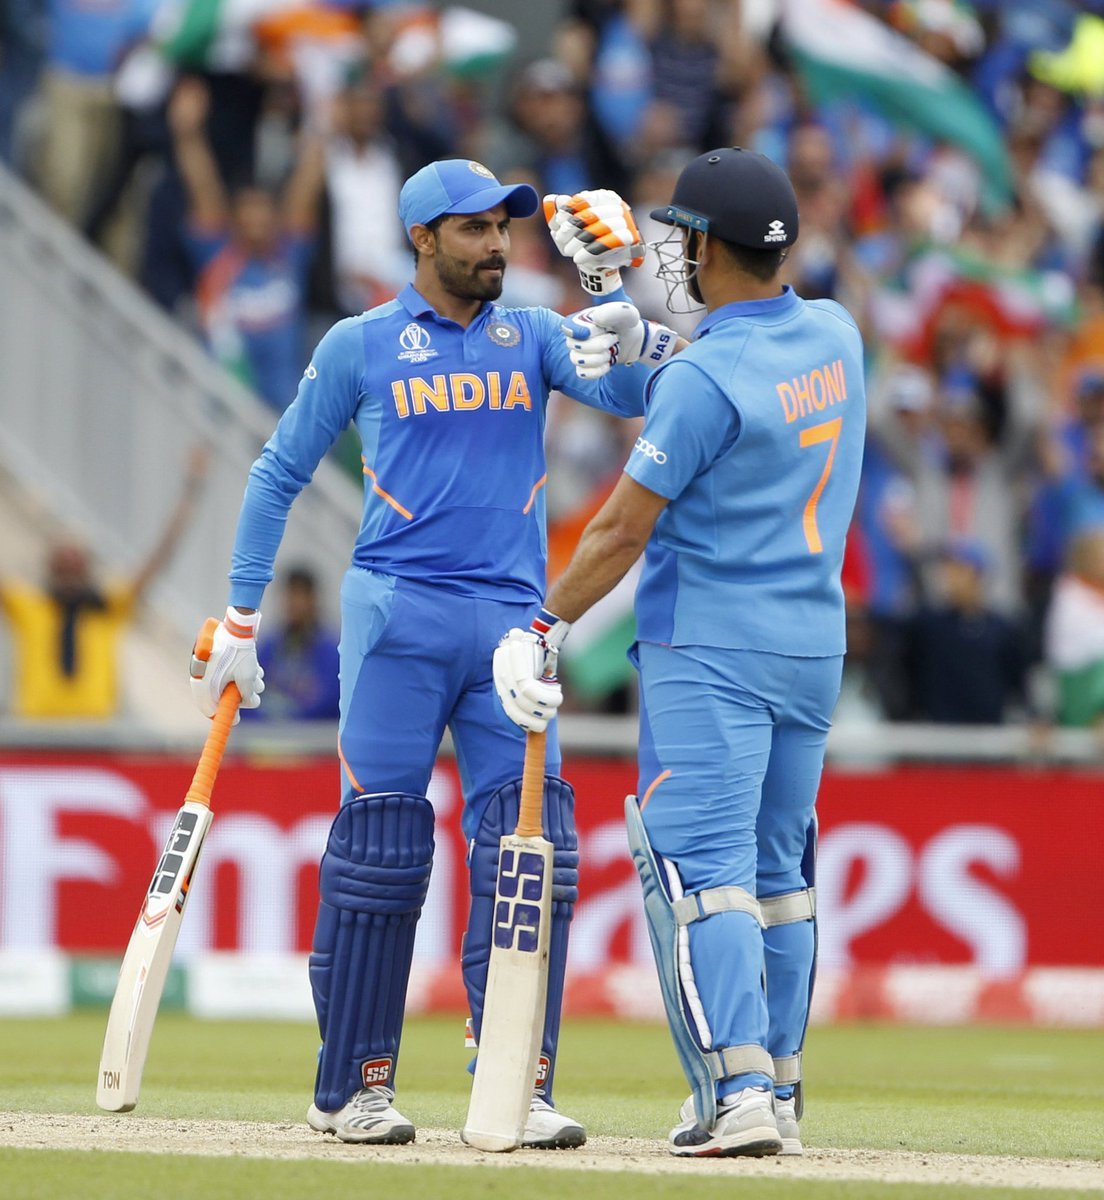 💔 just like every 🇮🇳 supporter. A good fight put up by @imjadeja & @msdhoni but @BLACKCAPS were exceptional today. Congrats to 🇳🇿 on making it to the Finals & all the best for the same. I felt #KaneWilliamson's captaincy & composure played a crucial role in this result. #NZvIND